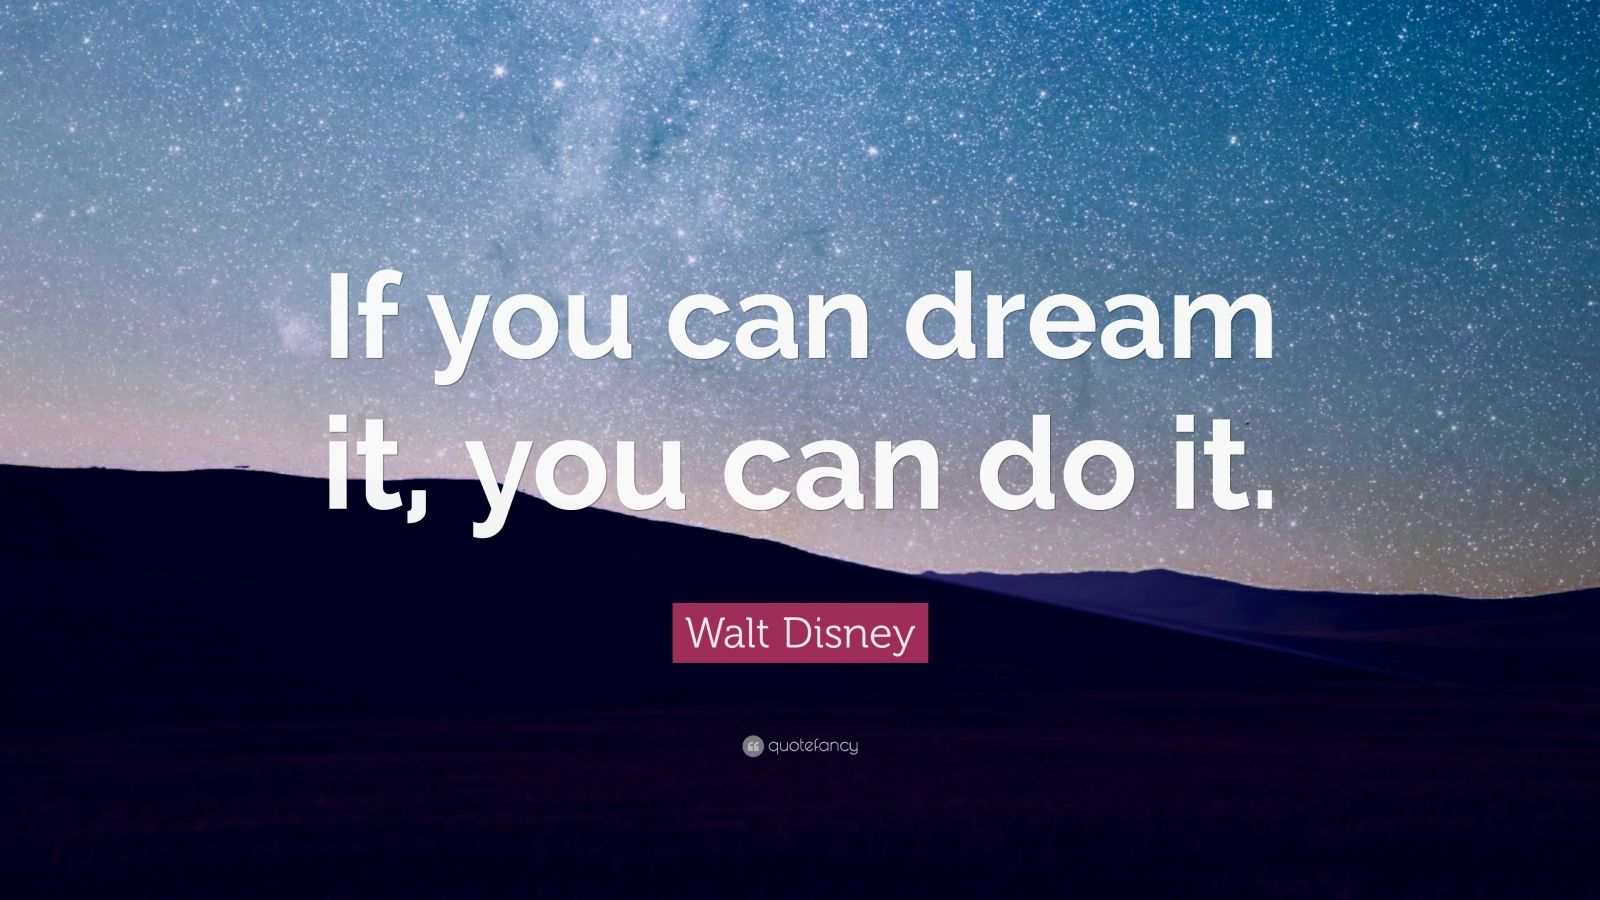 Motivation Business Quotes Wallpaper Hd Desktop Walt Disney Quote If You Can Dream It You Can Do It